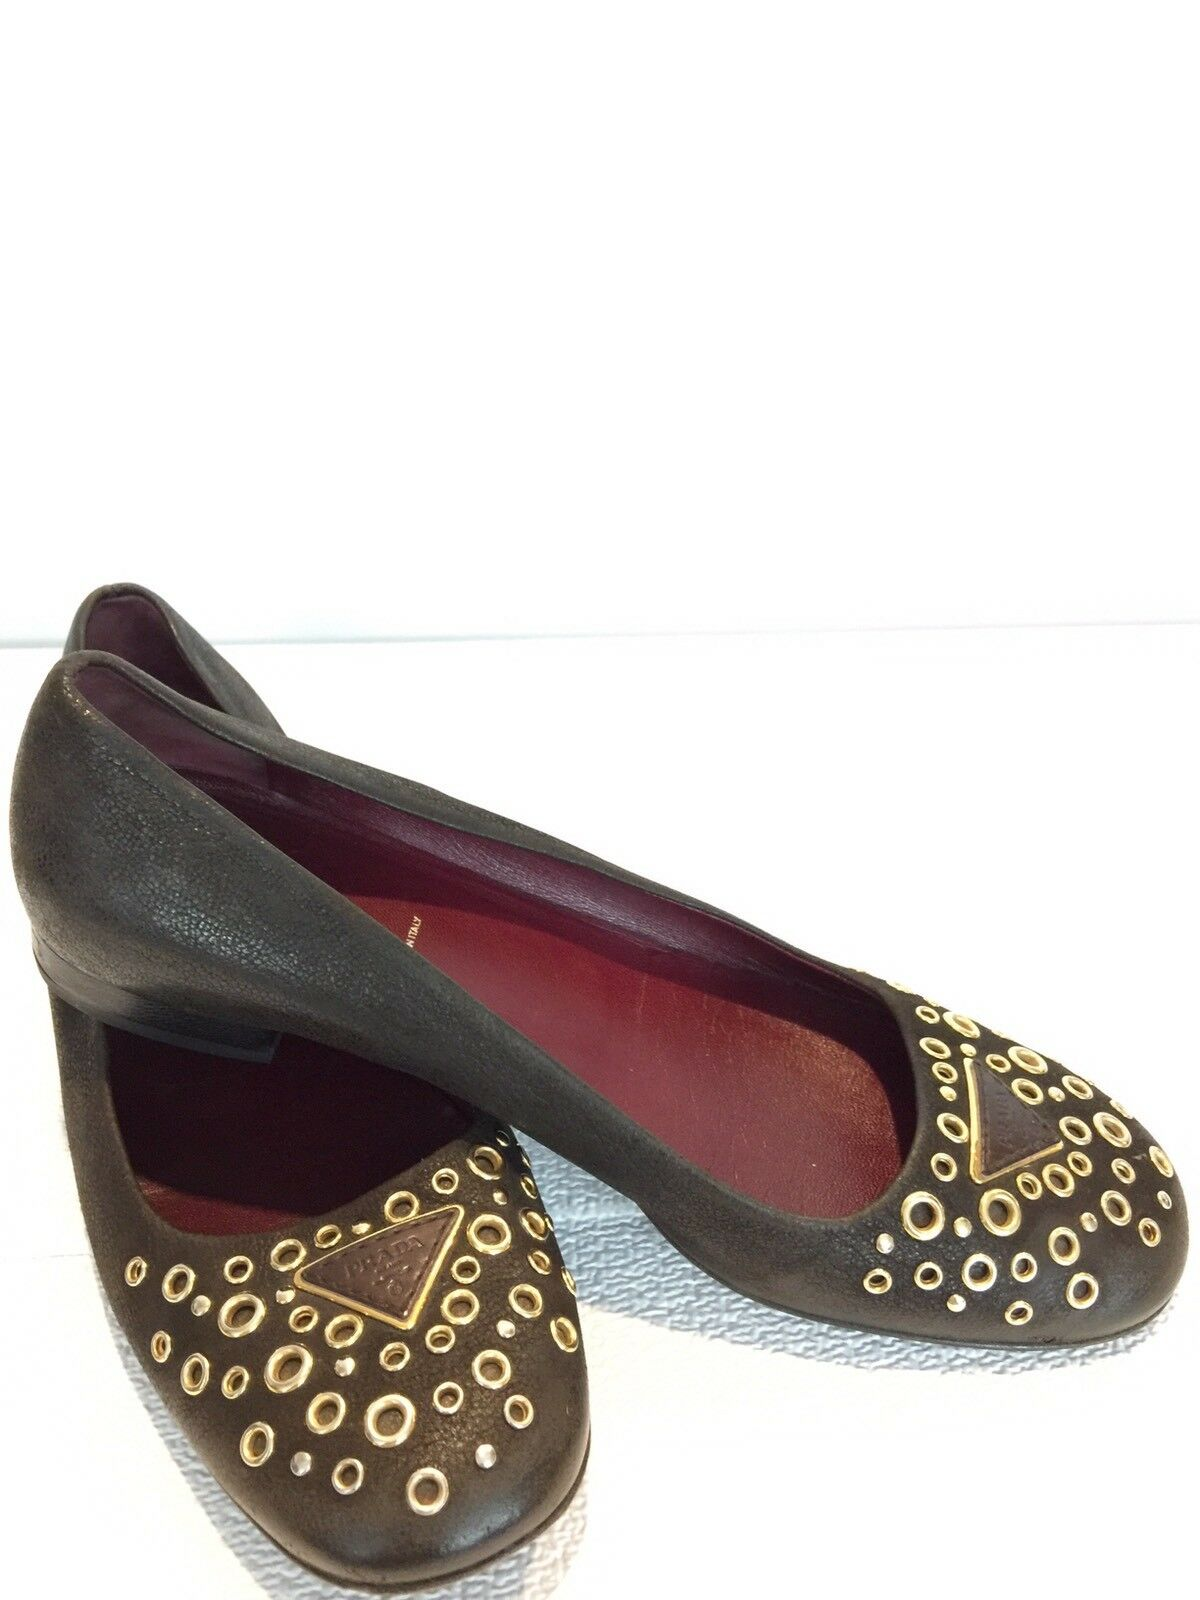 Authentic Prada Brown Leather Eyelet Decorative Loafers, 39.5, 9 US